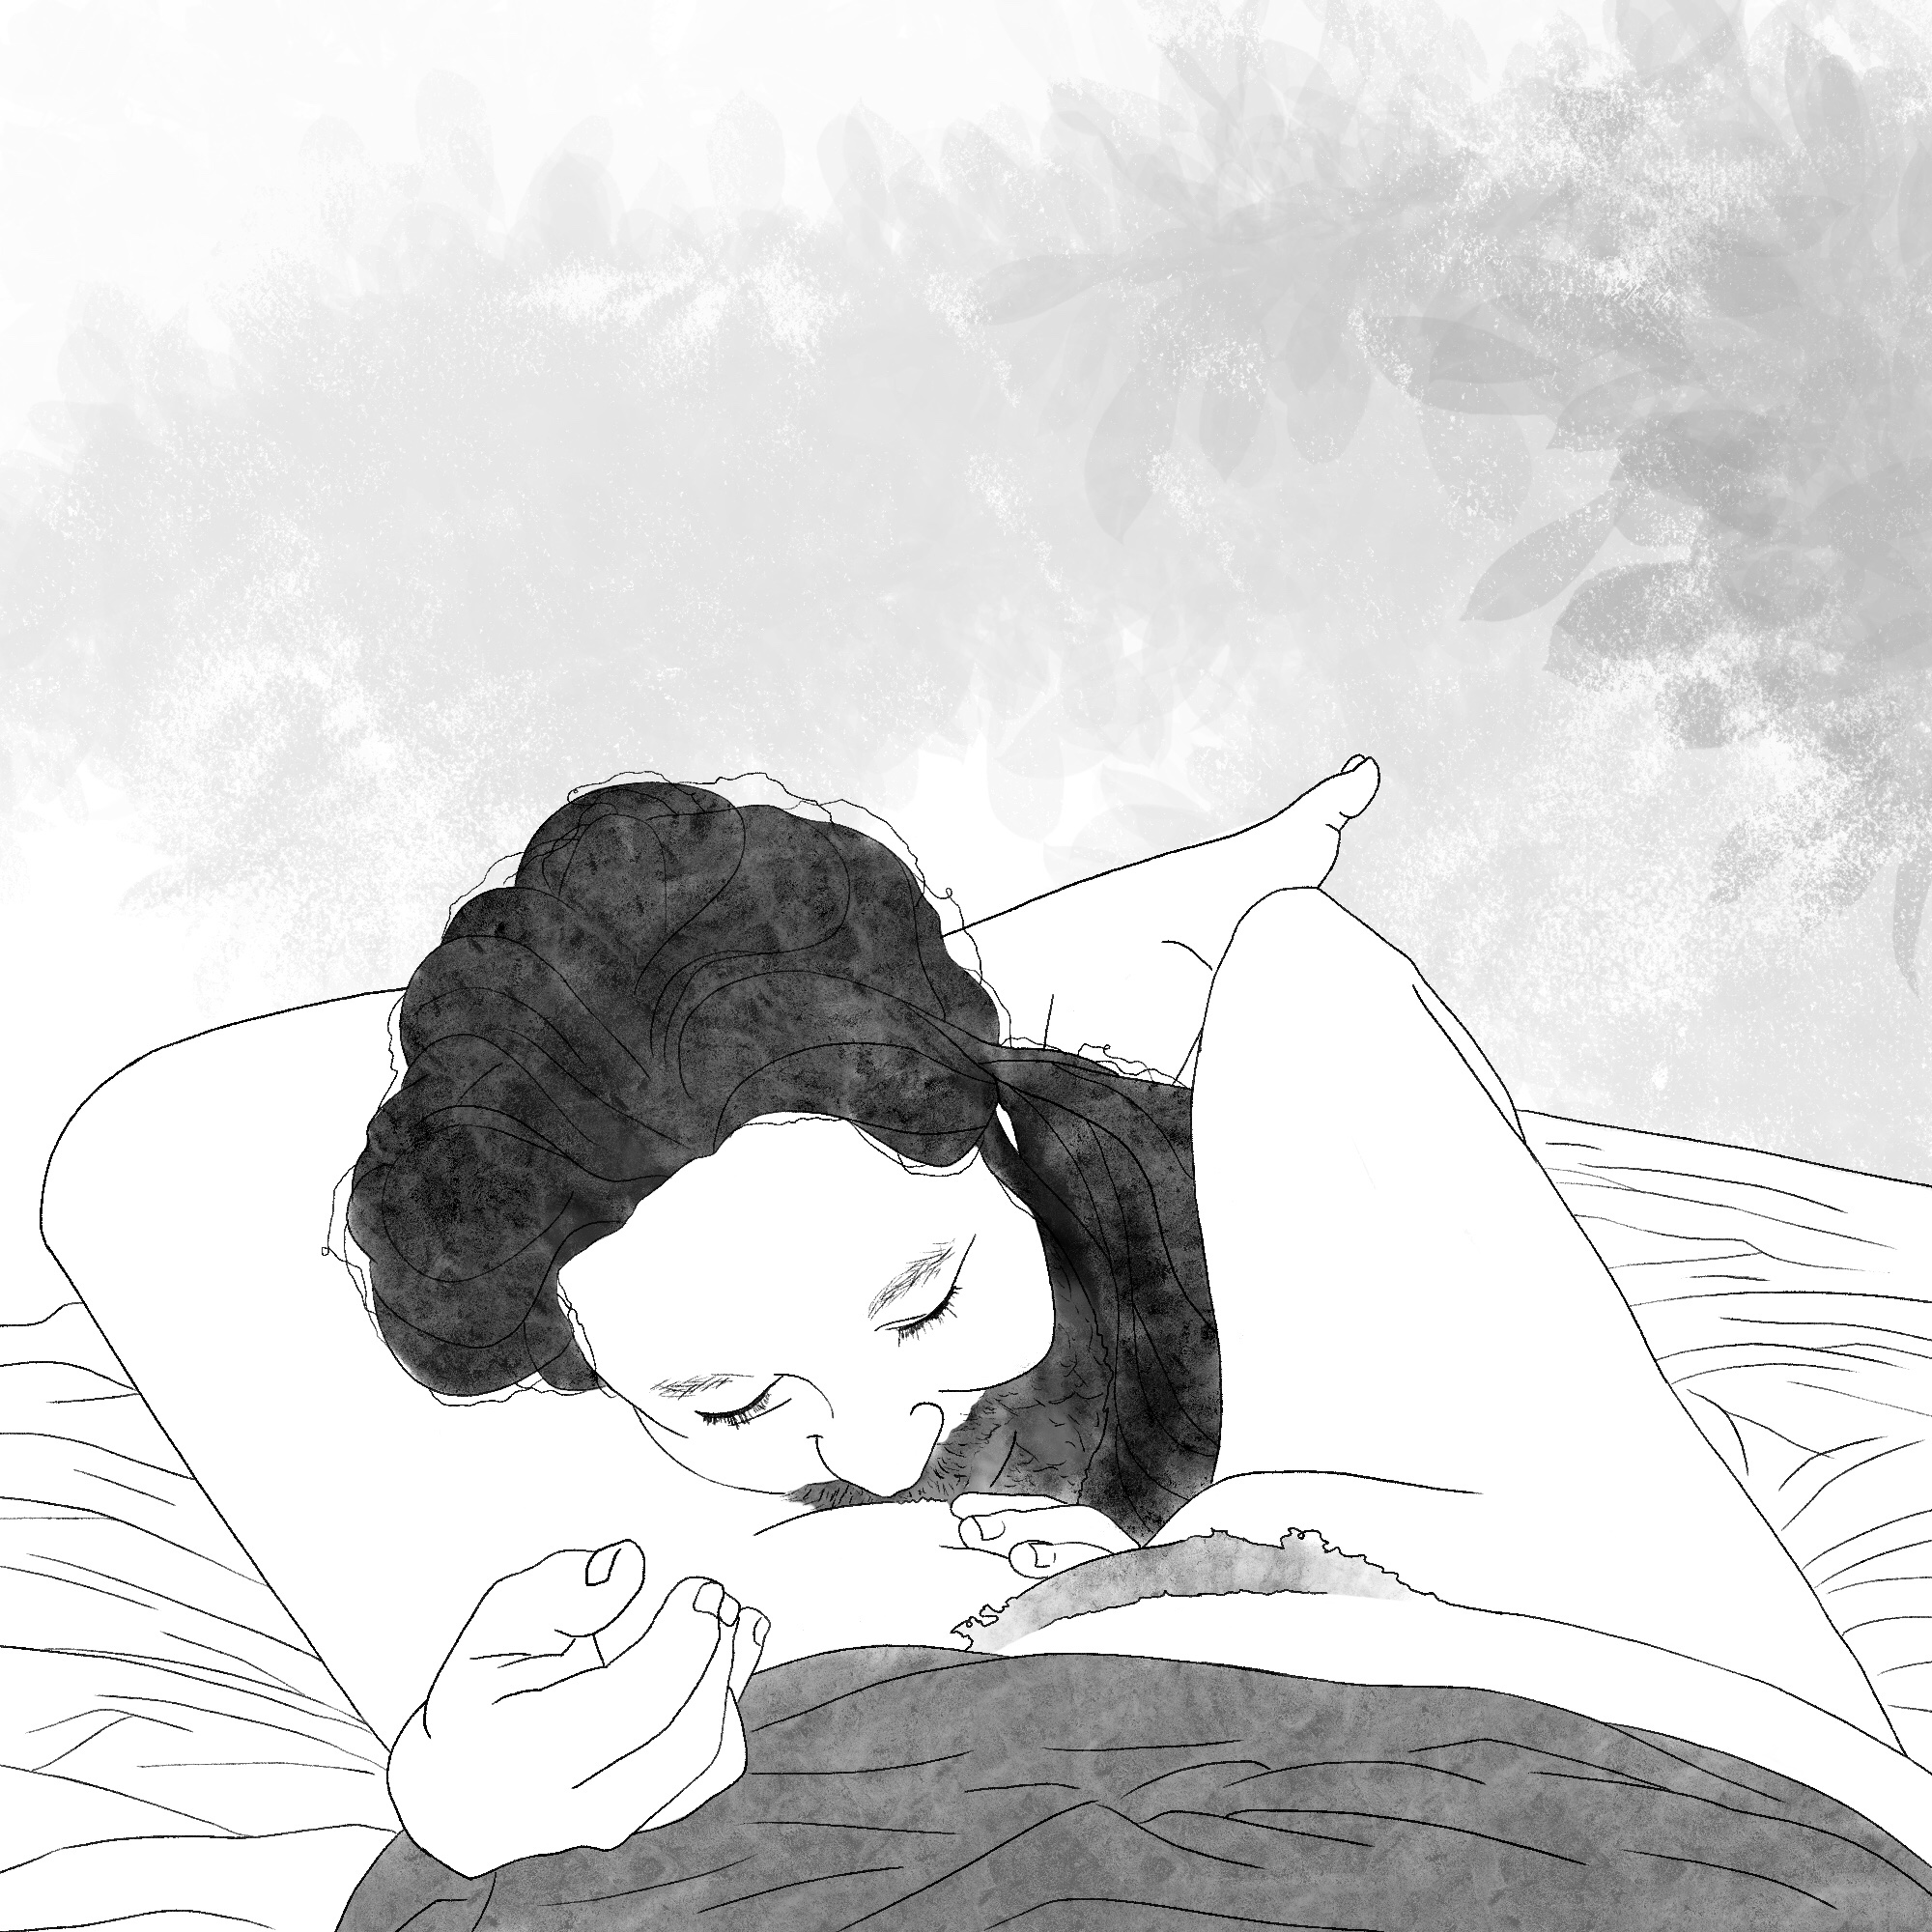 A man with dark hair and a beard smiles with his head resting peacefully on the inside of a woman's nude thigh.